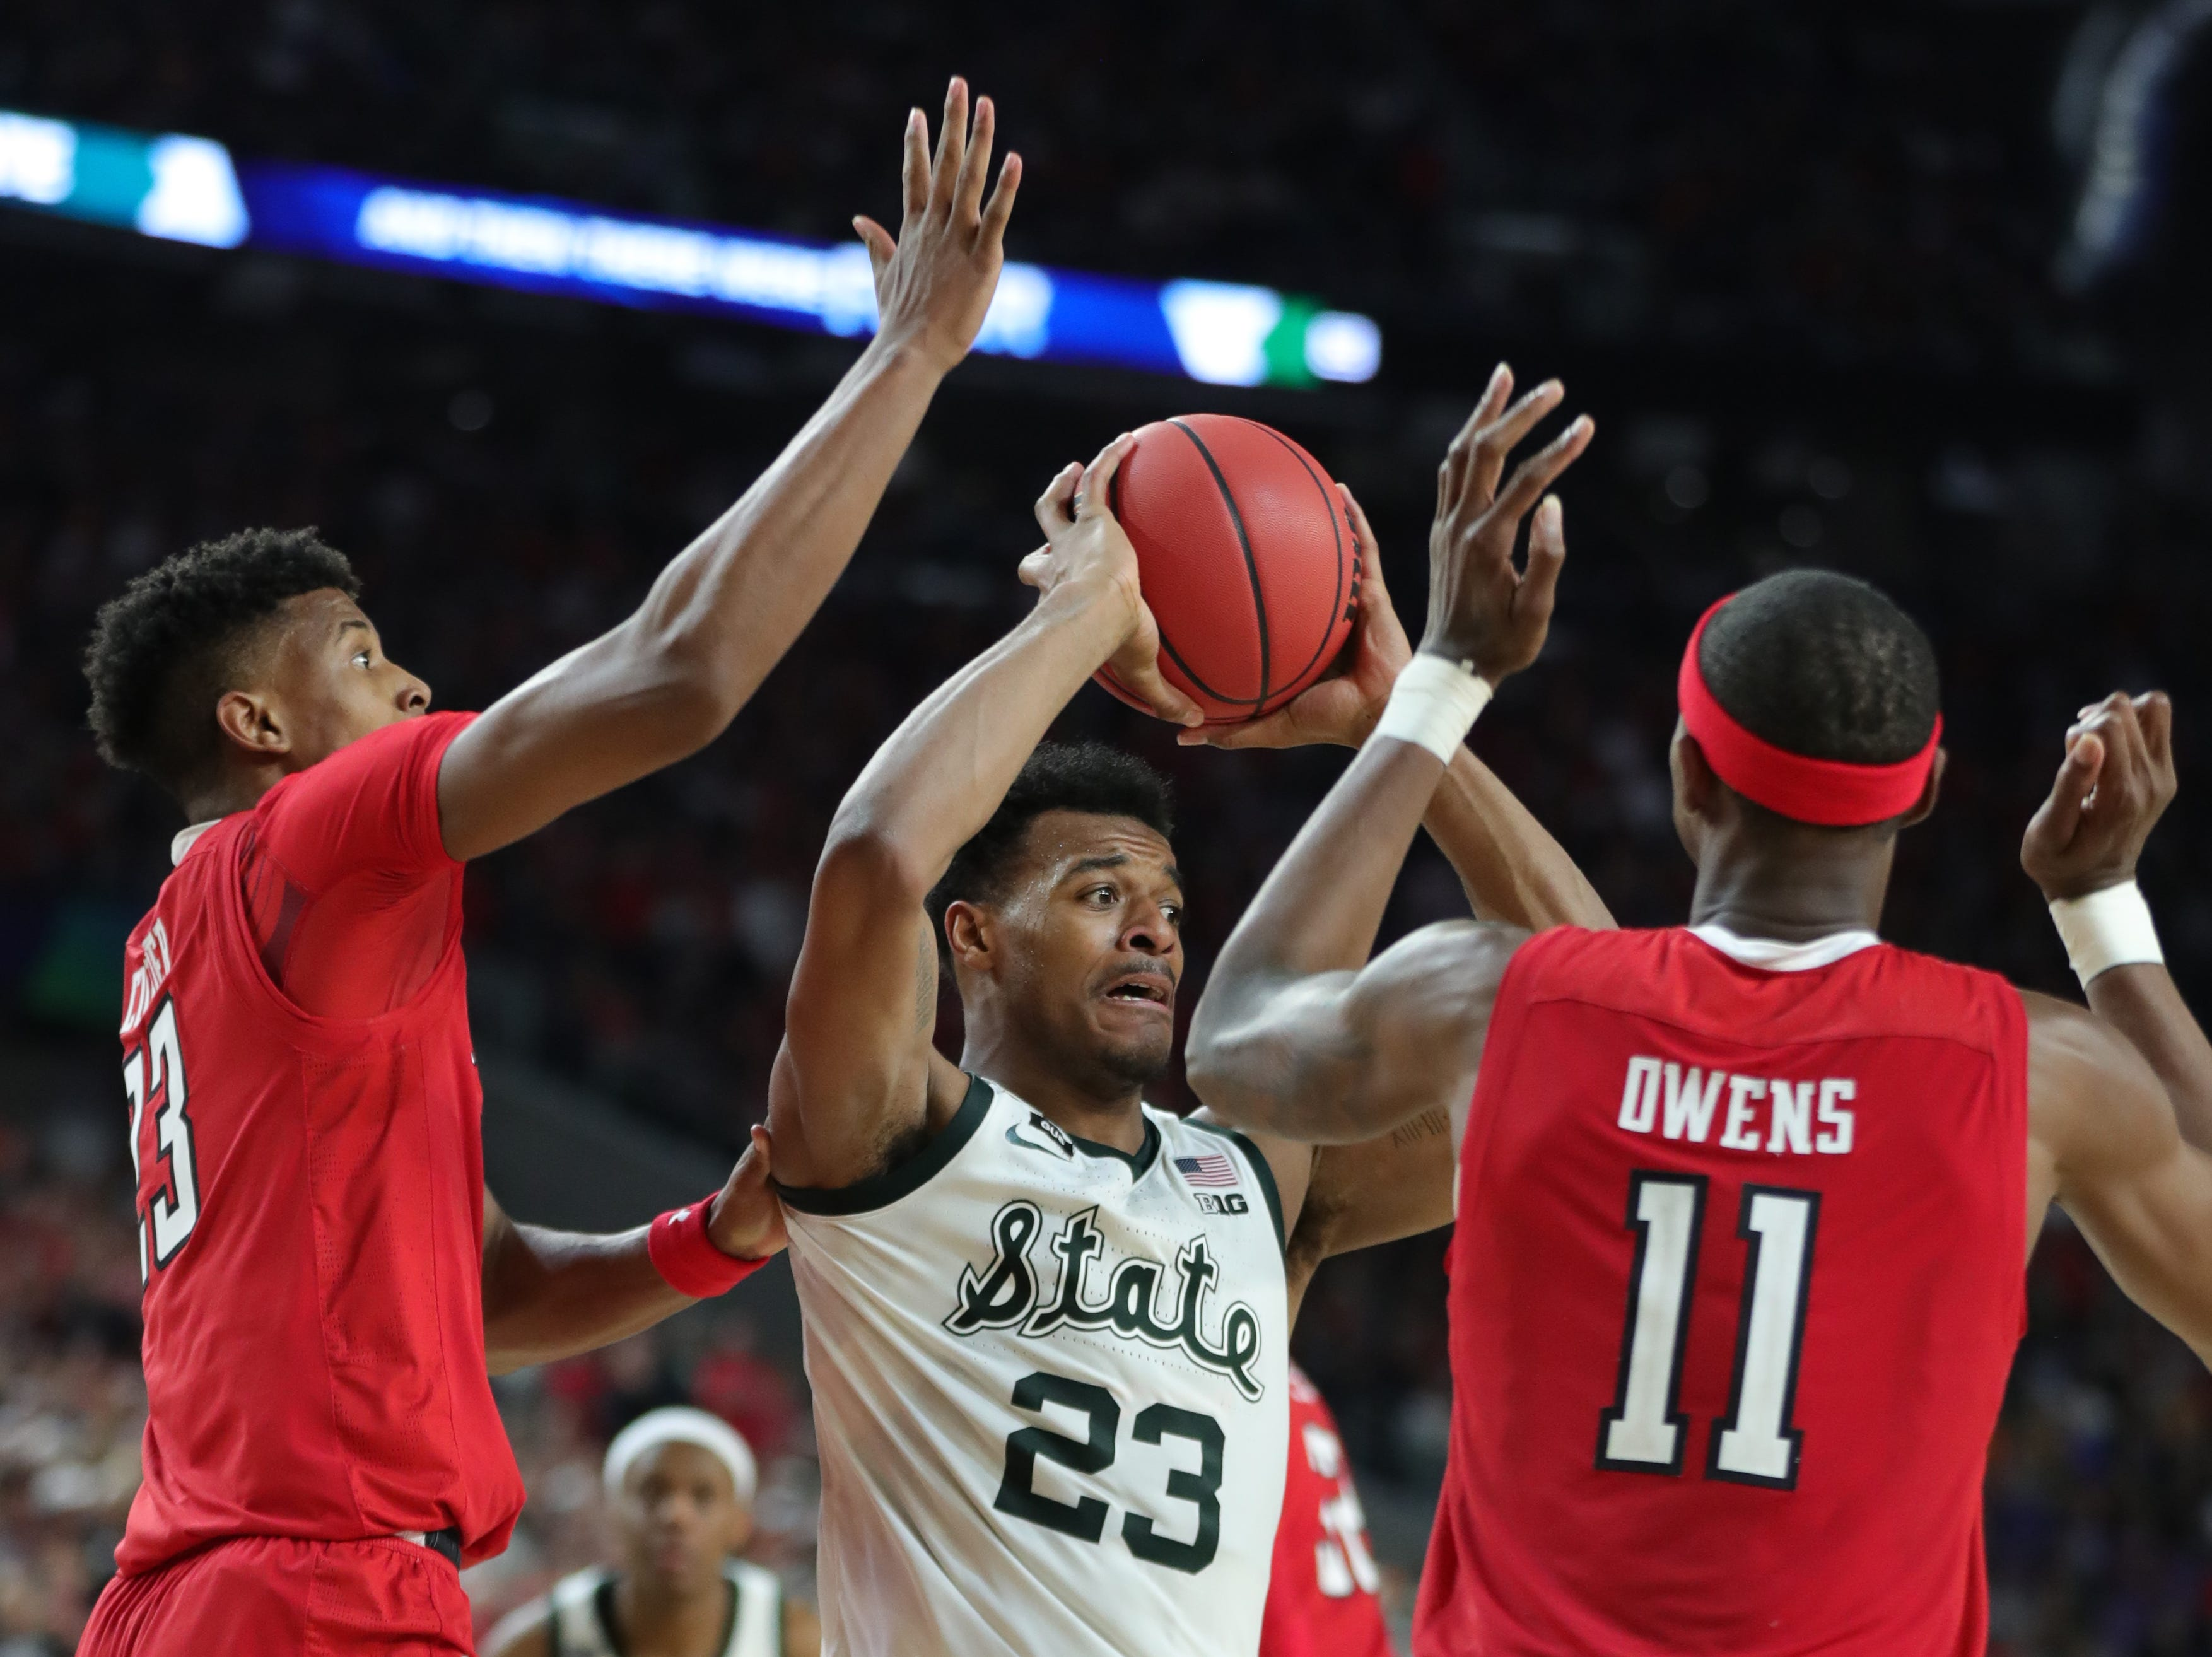 Michigan State forward Xavier Tillman (23) looks to pass the ball around Texas Tech guard Jarrett Culver (23) and forward Tariq Owens (11) in the second half of the Final Four game at U.S. Bank Stadium in Minneapolis, Minnesota on Saturday, April 06, 2019.